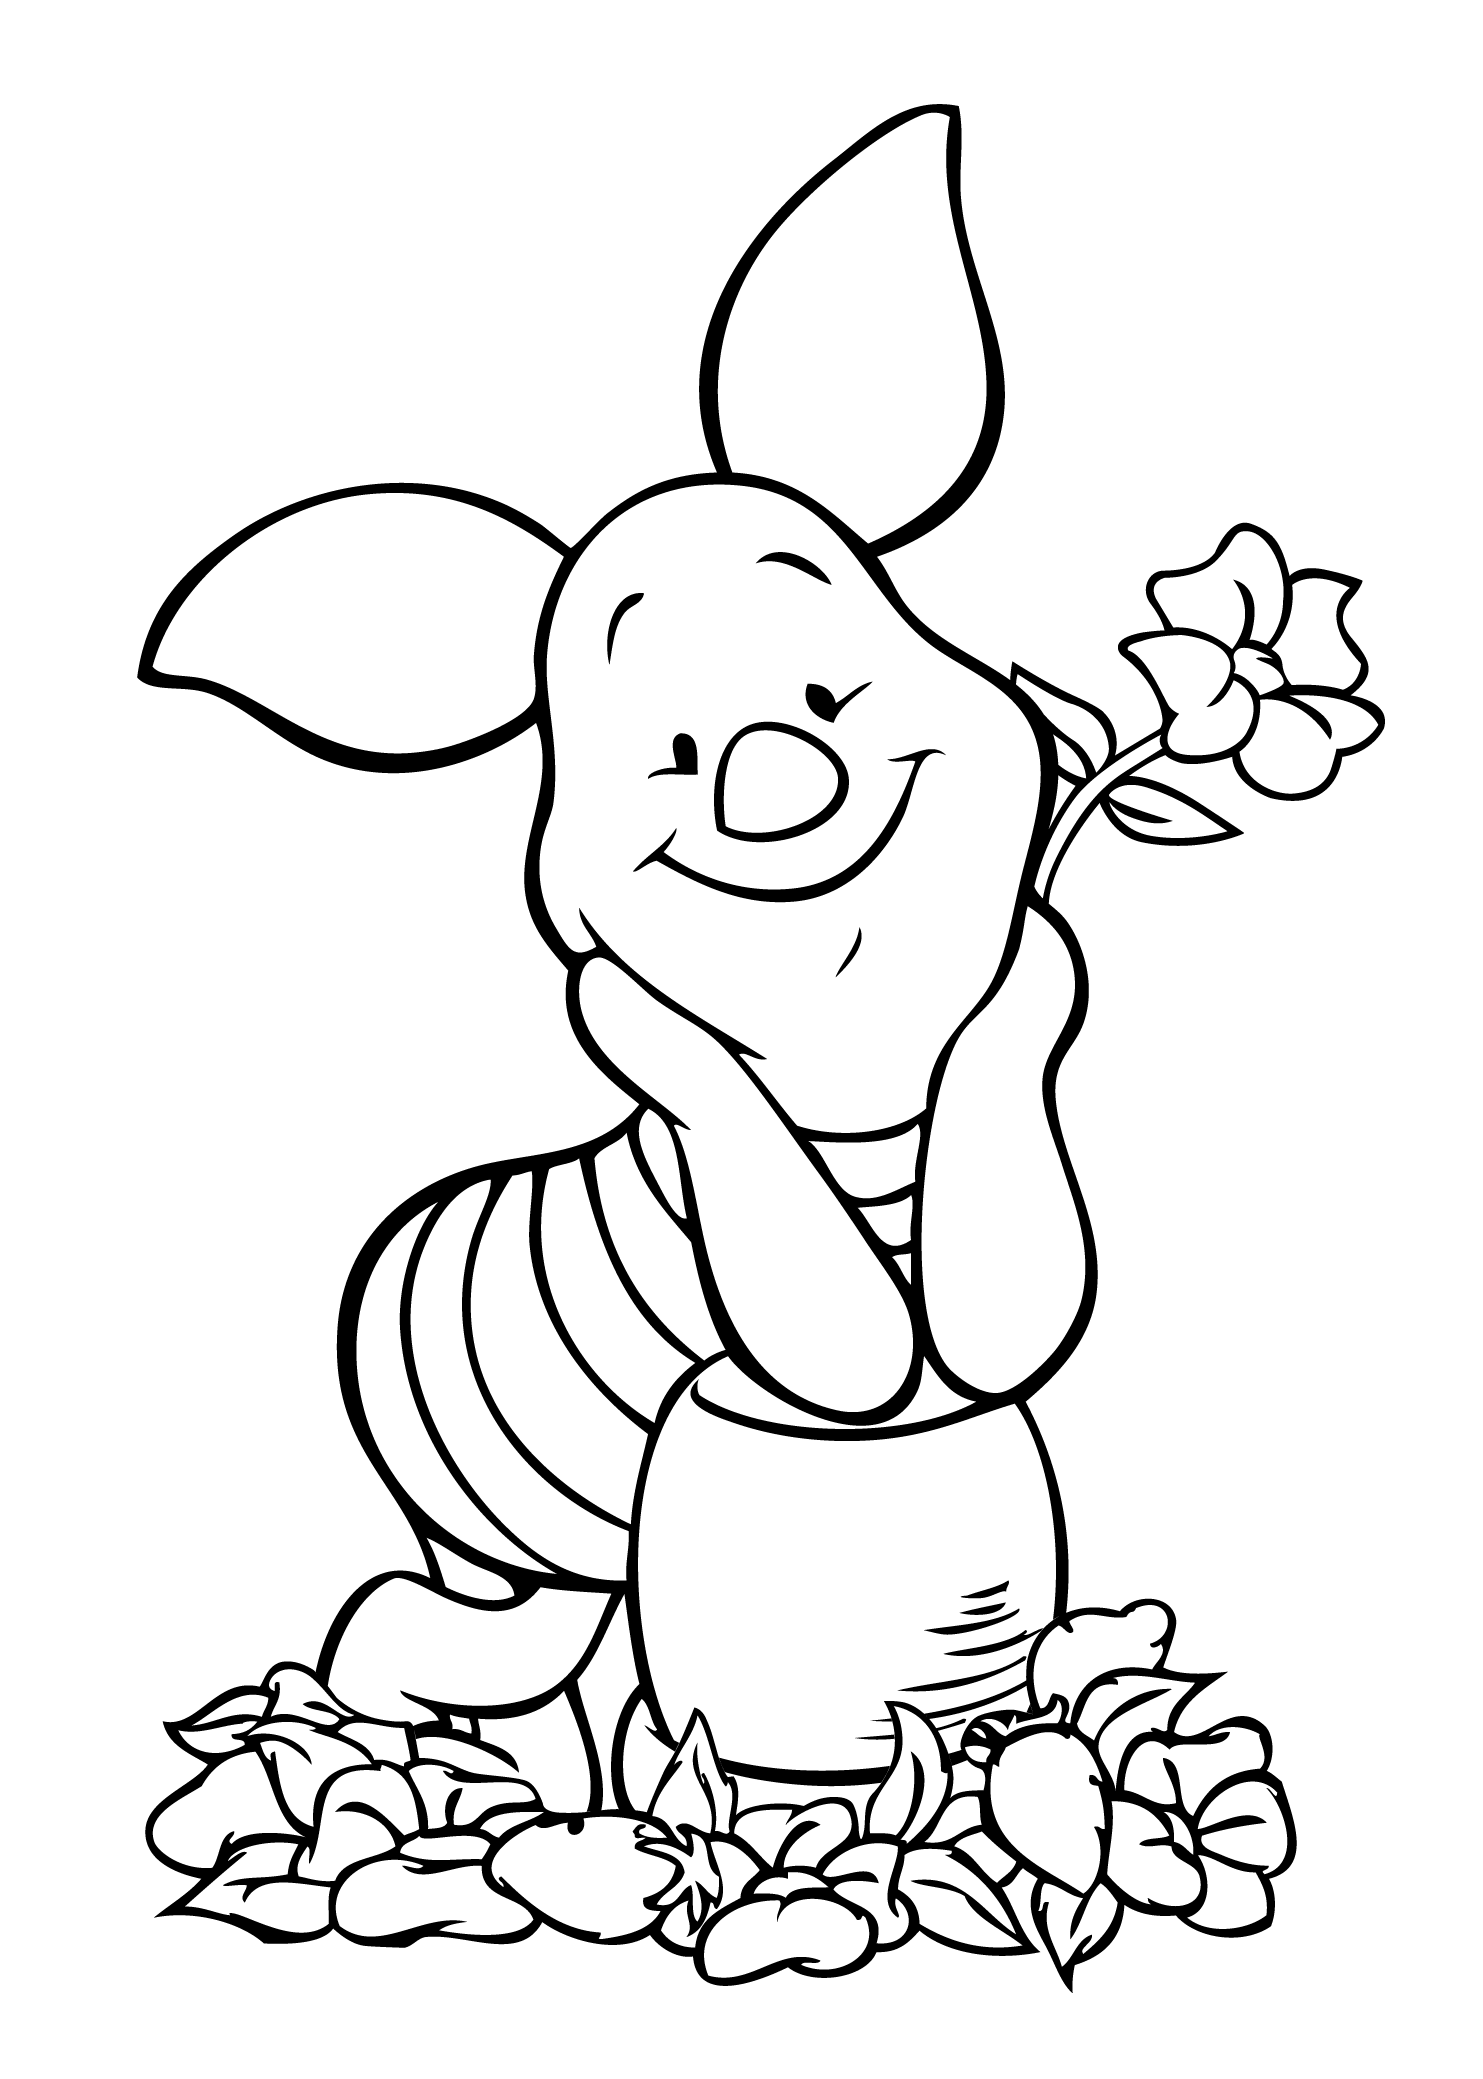 Winnie Pooh piglet coloring page  Cartoon coloring pages, Disney